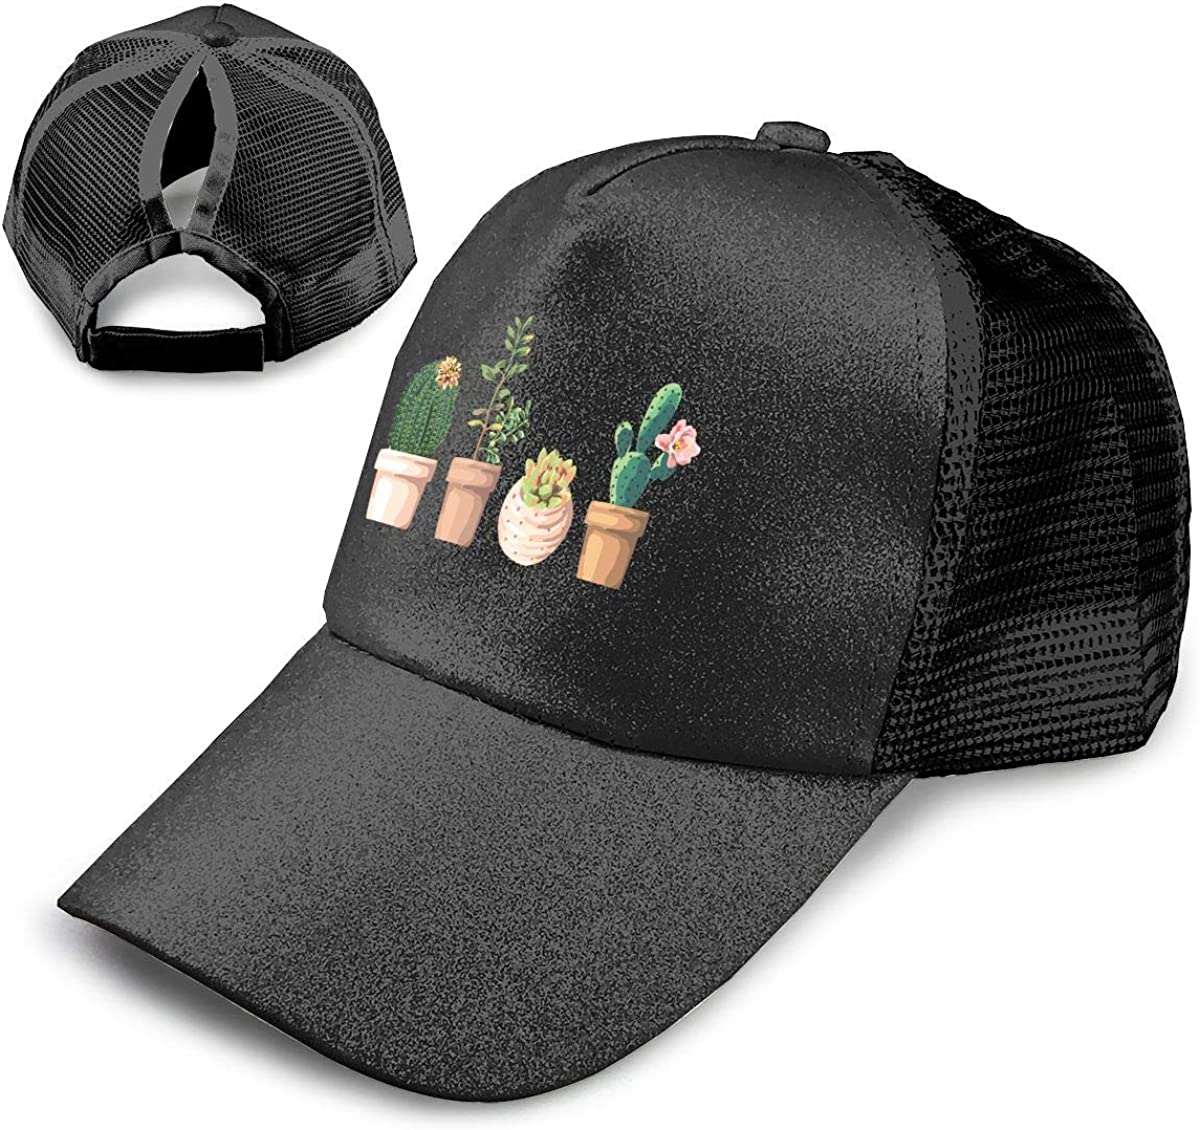 SDFS83 Coat-Of-Arms Adult Cowboy Hat Baseball Cap Adjustable Athletic Custom Trendy Hat For Men and Women